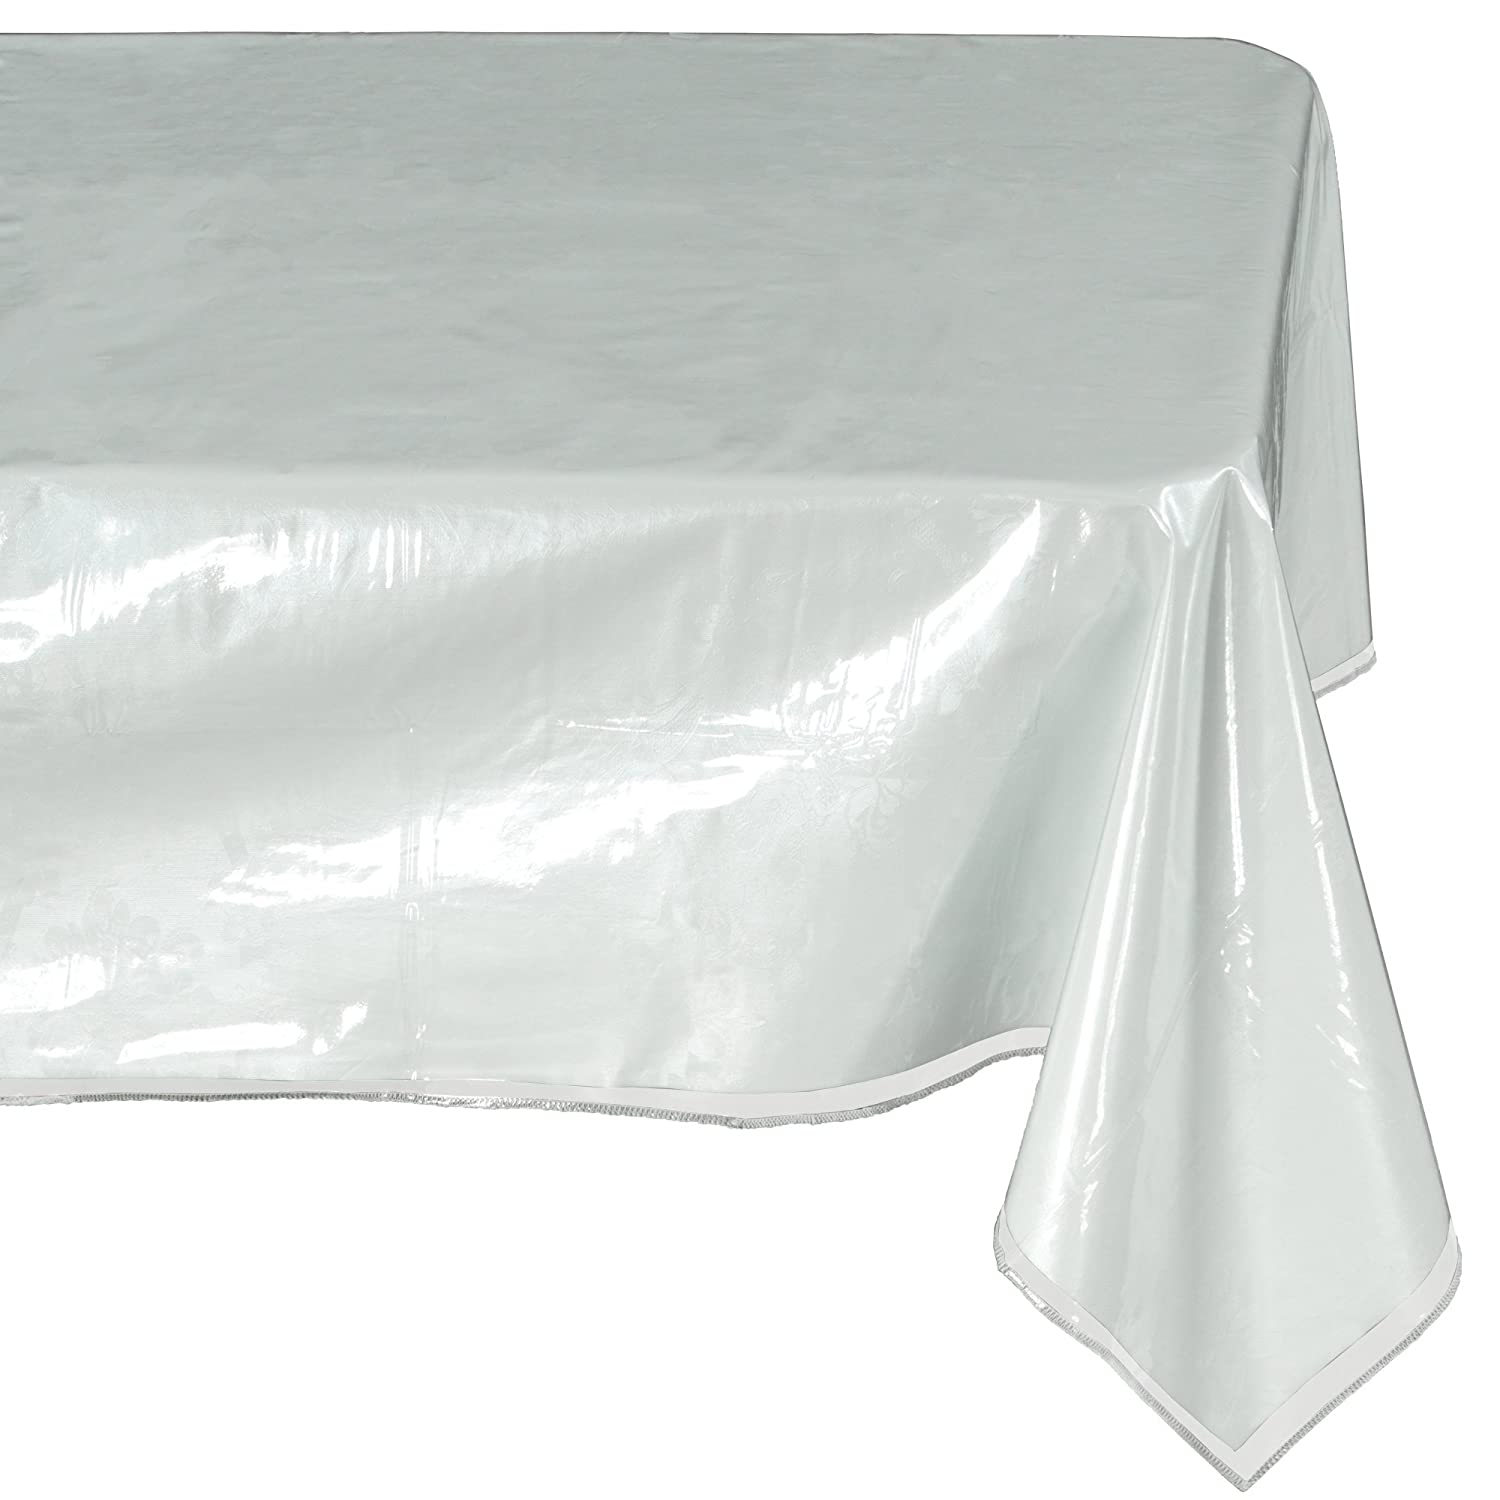 Ottomanson Heavy Duty Clear Plastic Tablecloth Clear Table Cover Protector White Sewn Edges Border Tablecloth, 54 X 54, Clear 54 X 54 TAB1999-54X54